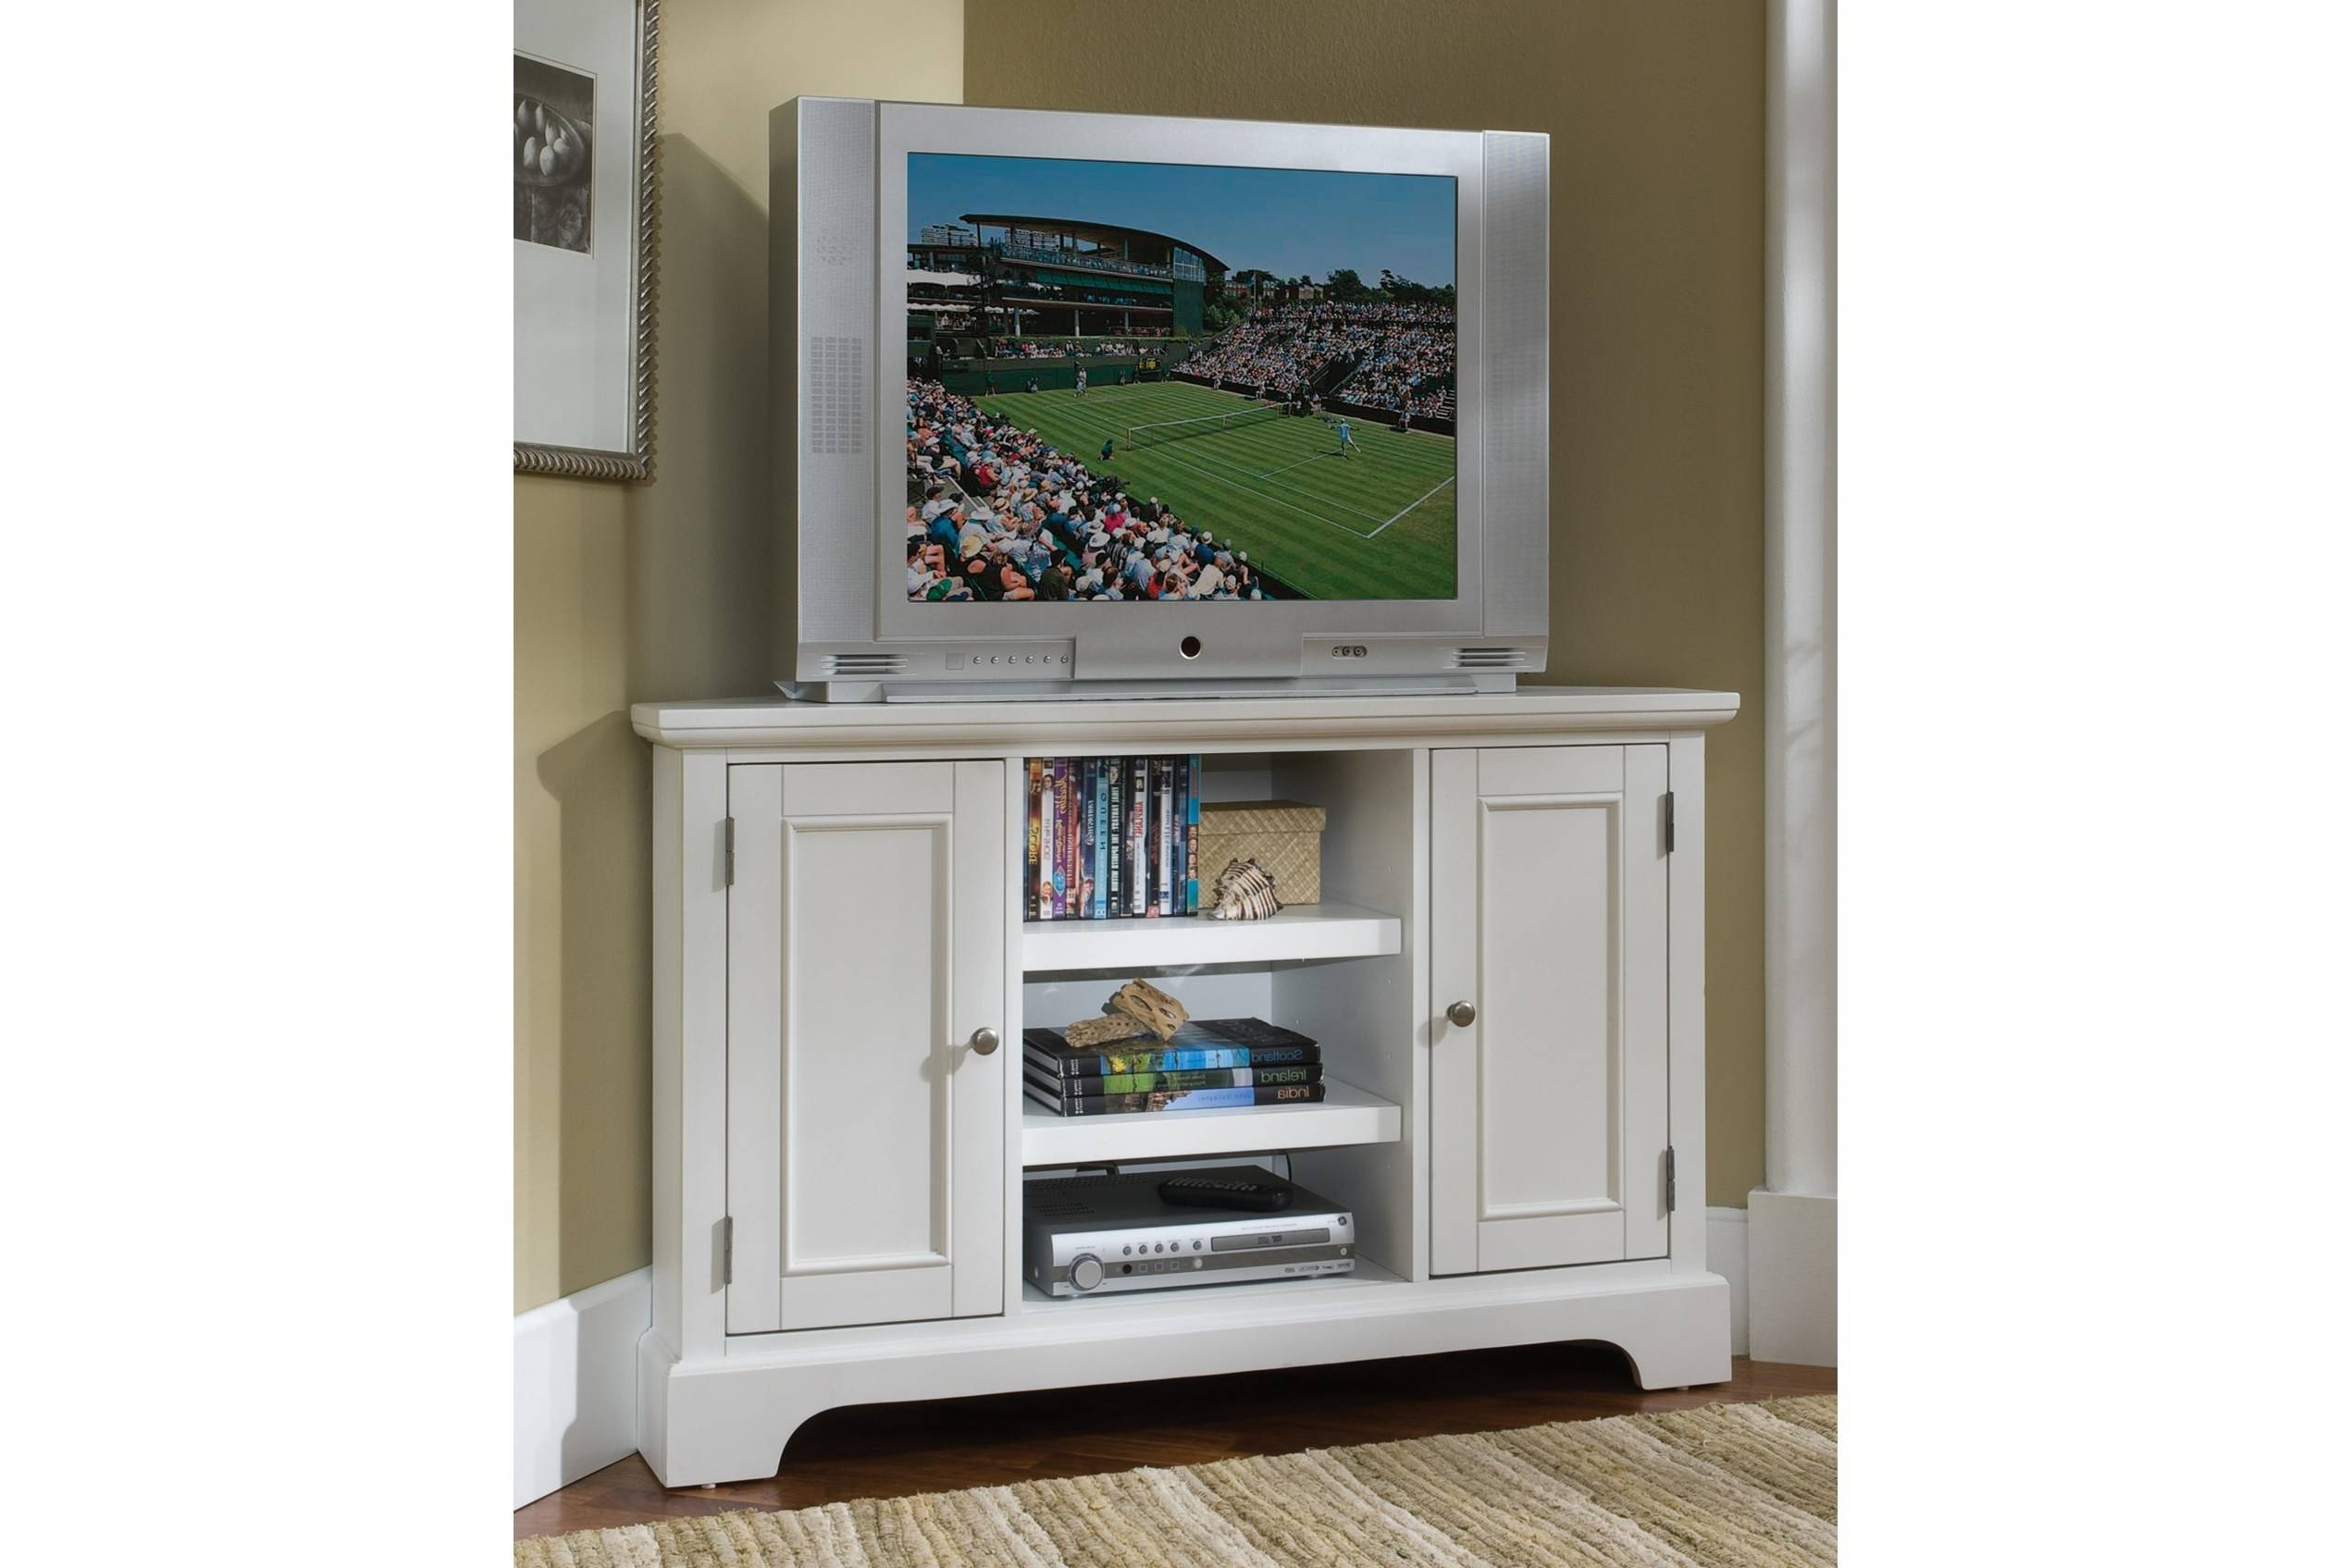 Flat Screen Tv Corner Cabinets With Doors • Cabinet Doors with regard to Corner Tv Cabinets For Flat Screen (Image 8 of 15)